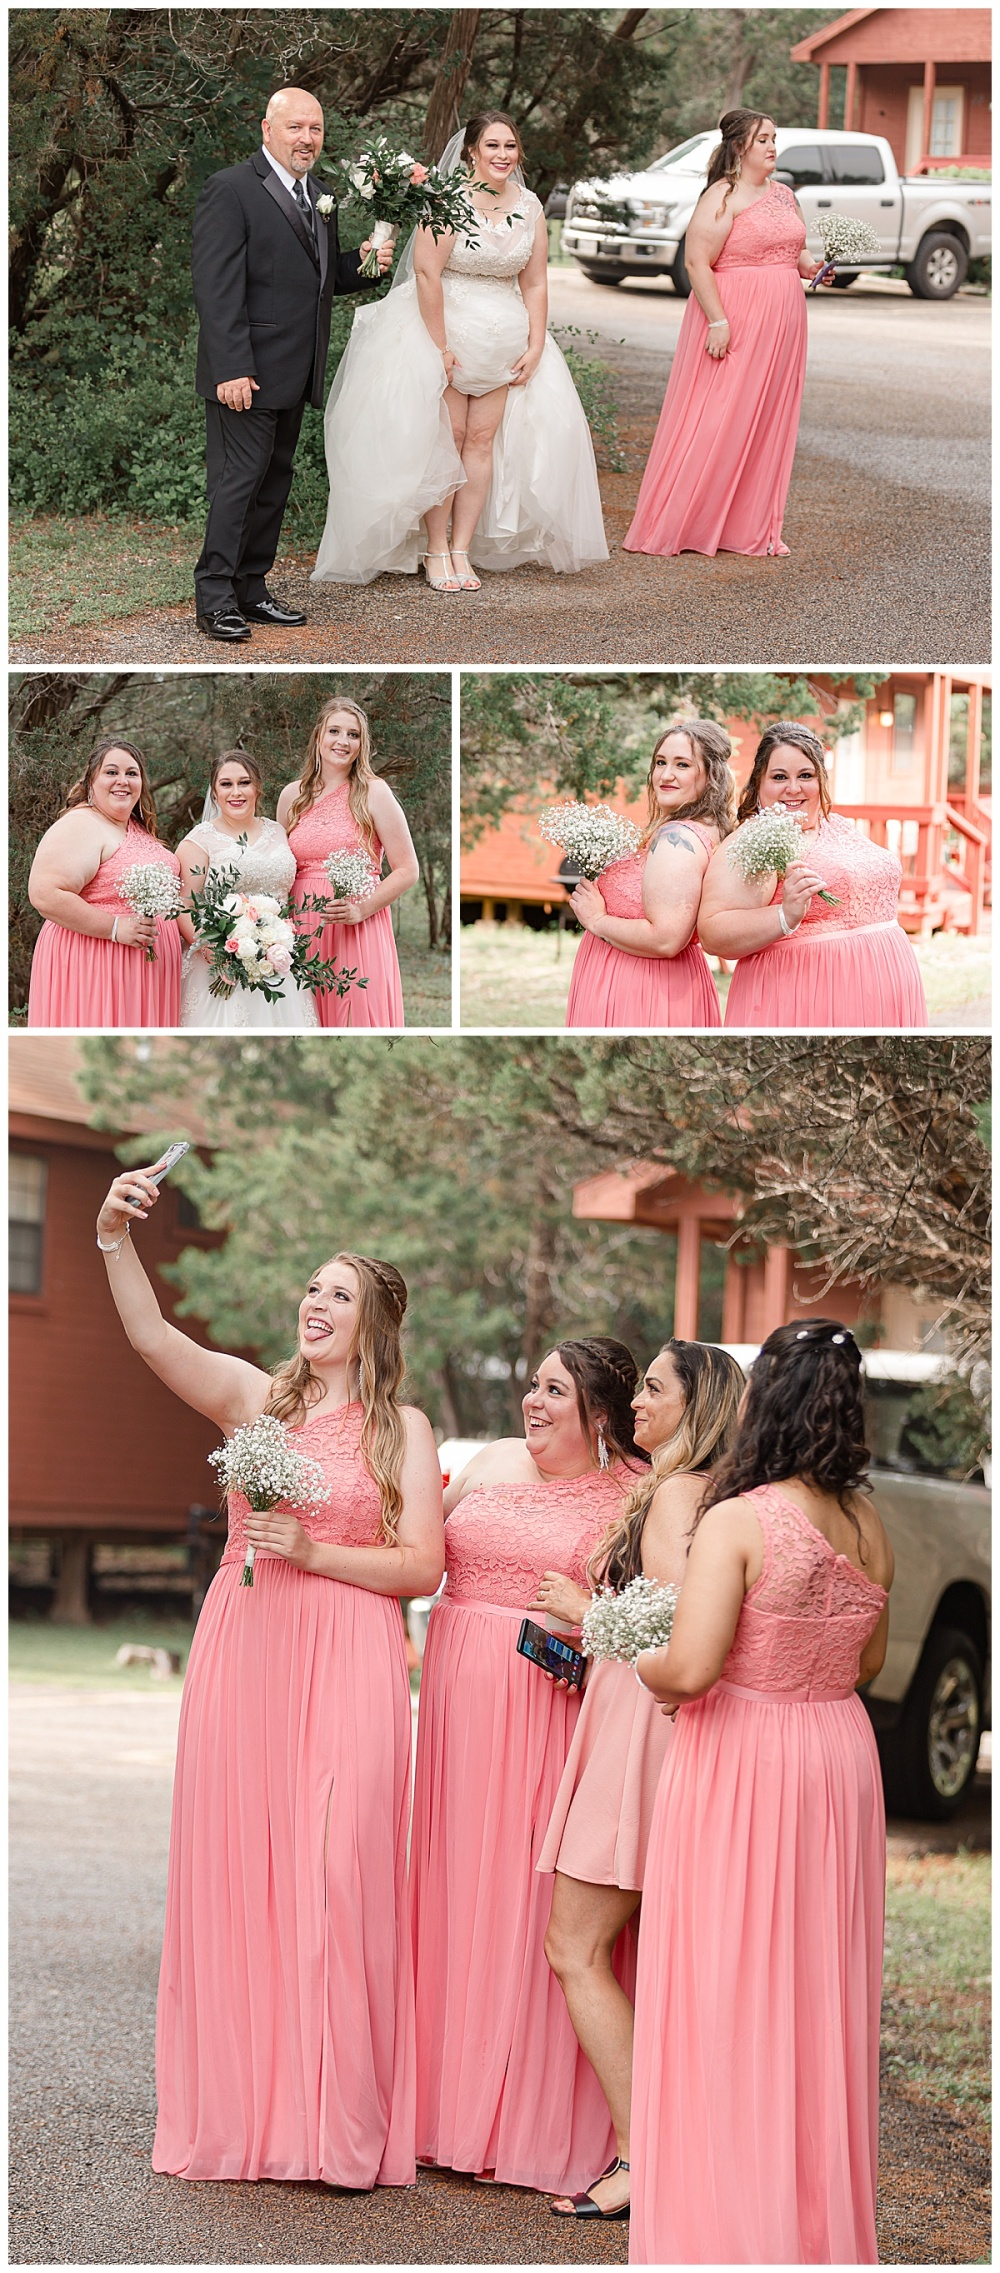 Michael-Tiffany-Wedding-New-Braunfels-Texas-Canyon-Lake-Cabins-and-Cottages-Carly-Barton-Photography_0017.jpg